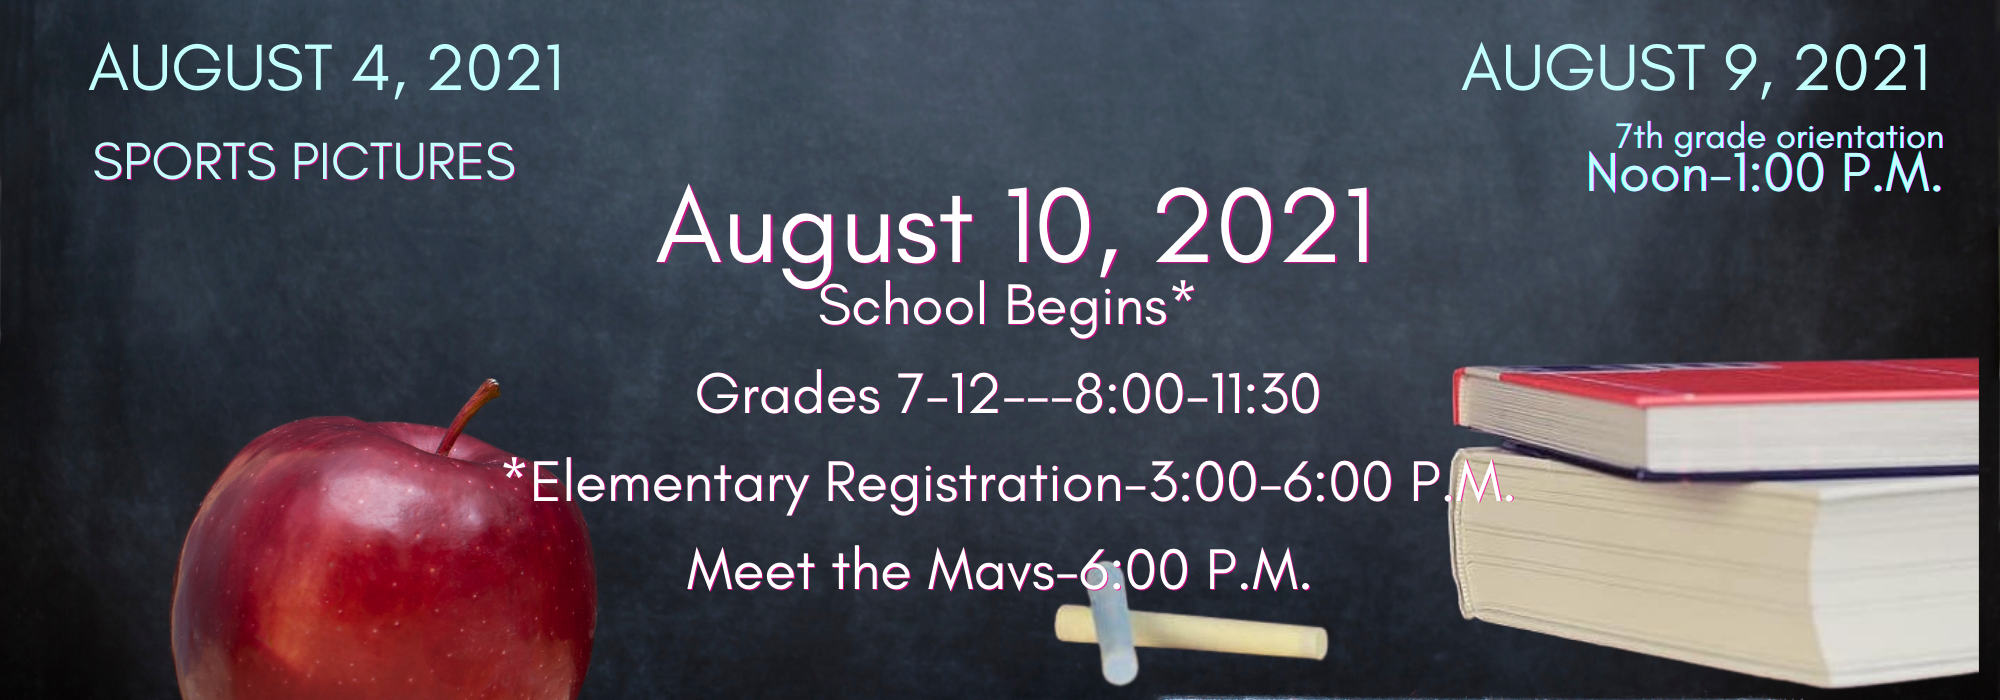 Back to School Dates